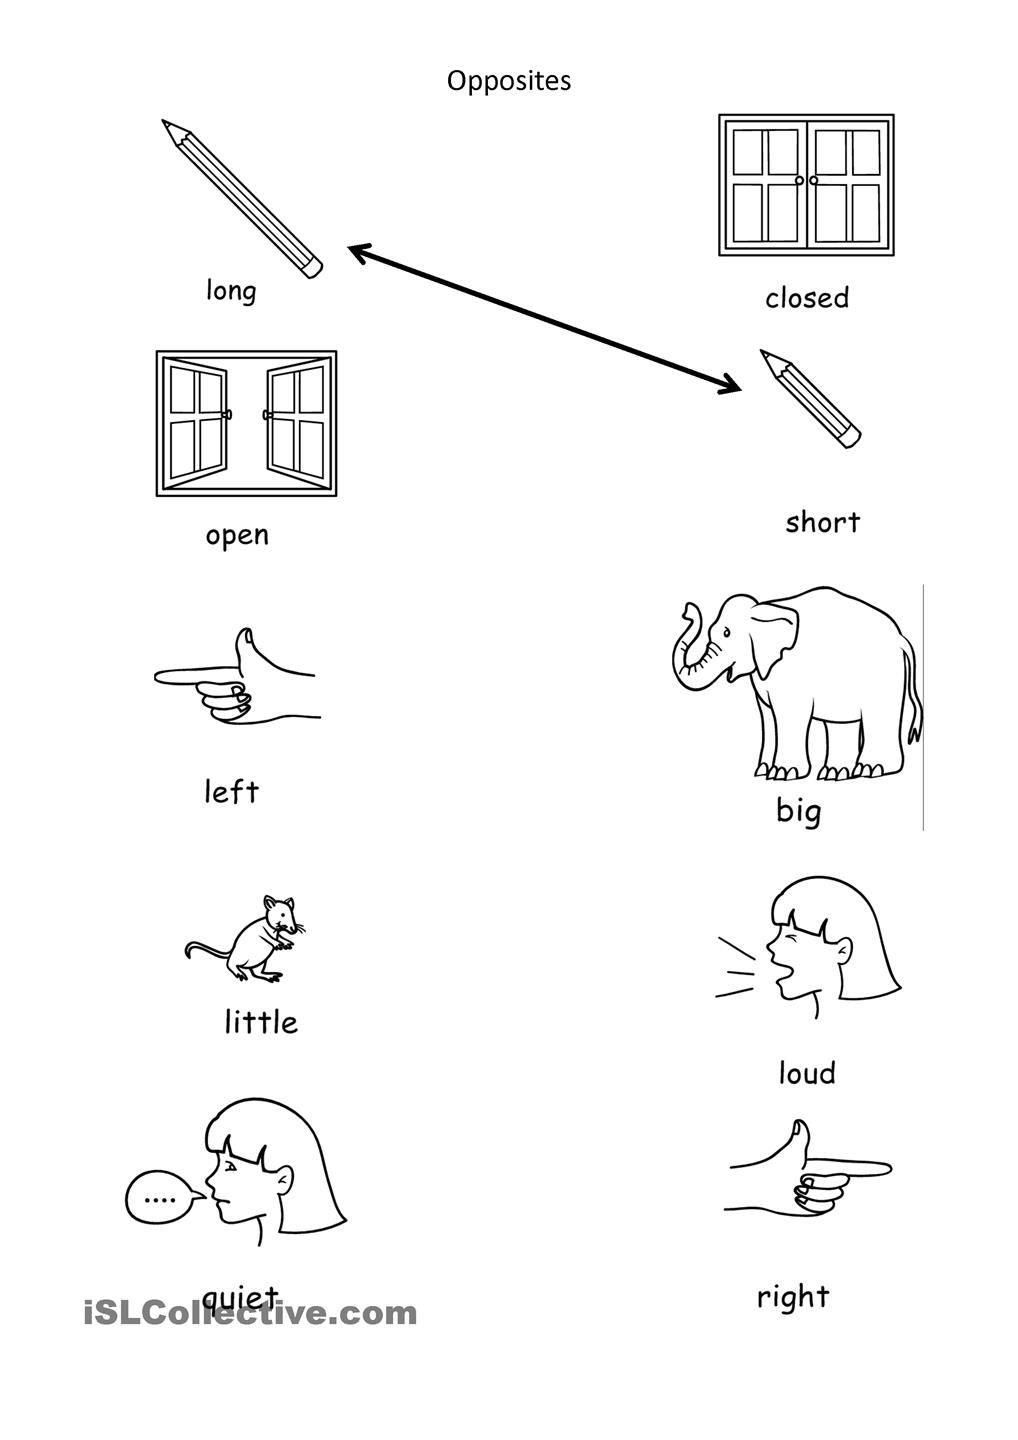 Worksheet Opposites Kindergarten - Kidz Activities